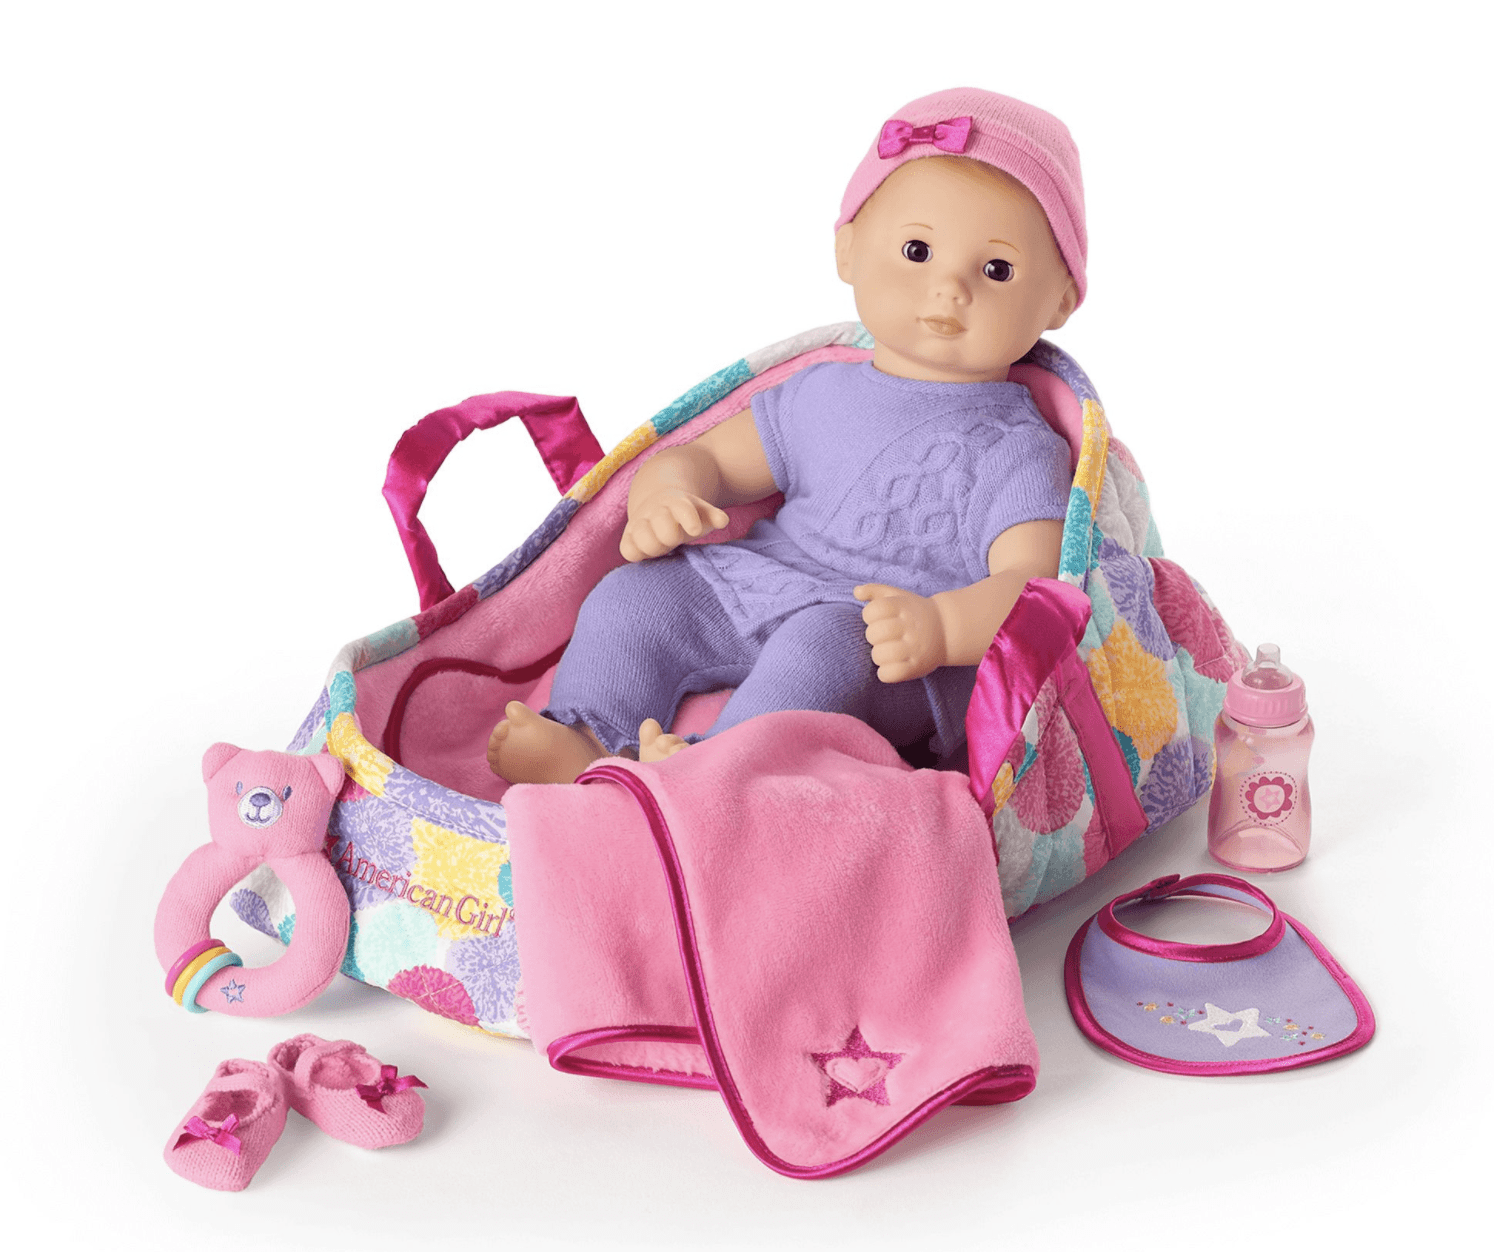 Bring Bitty Baby Home Collection